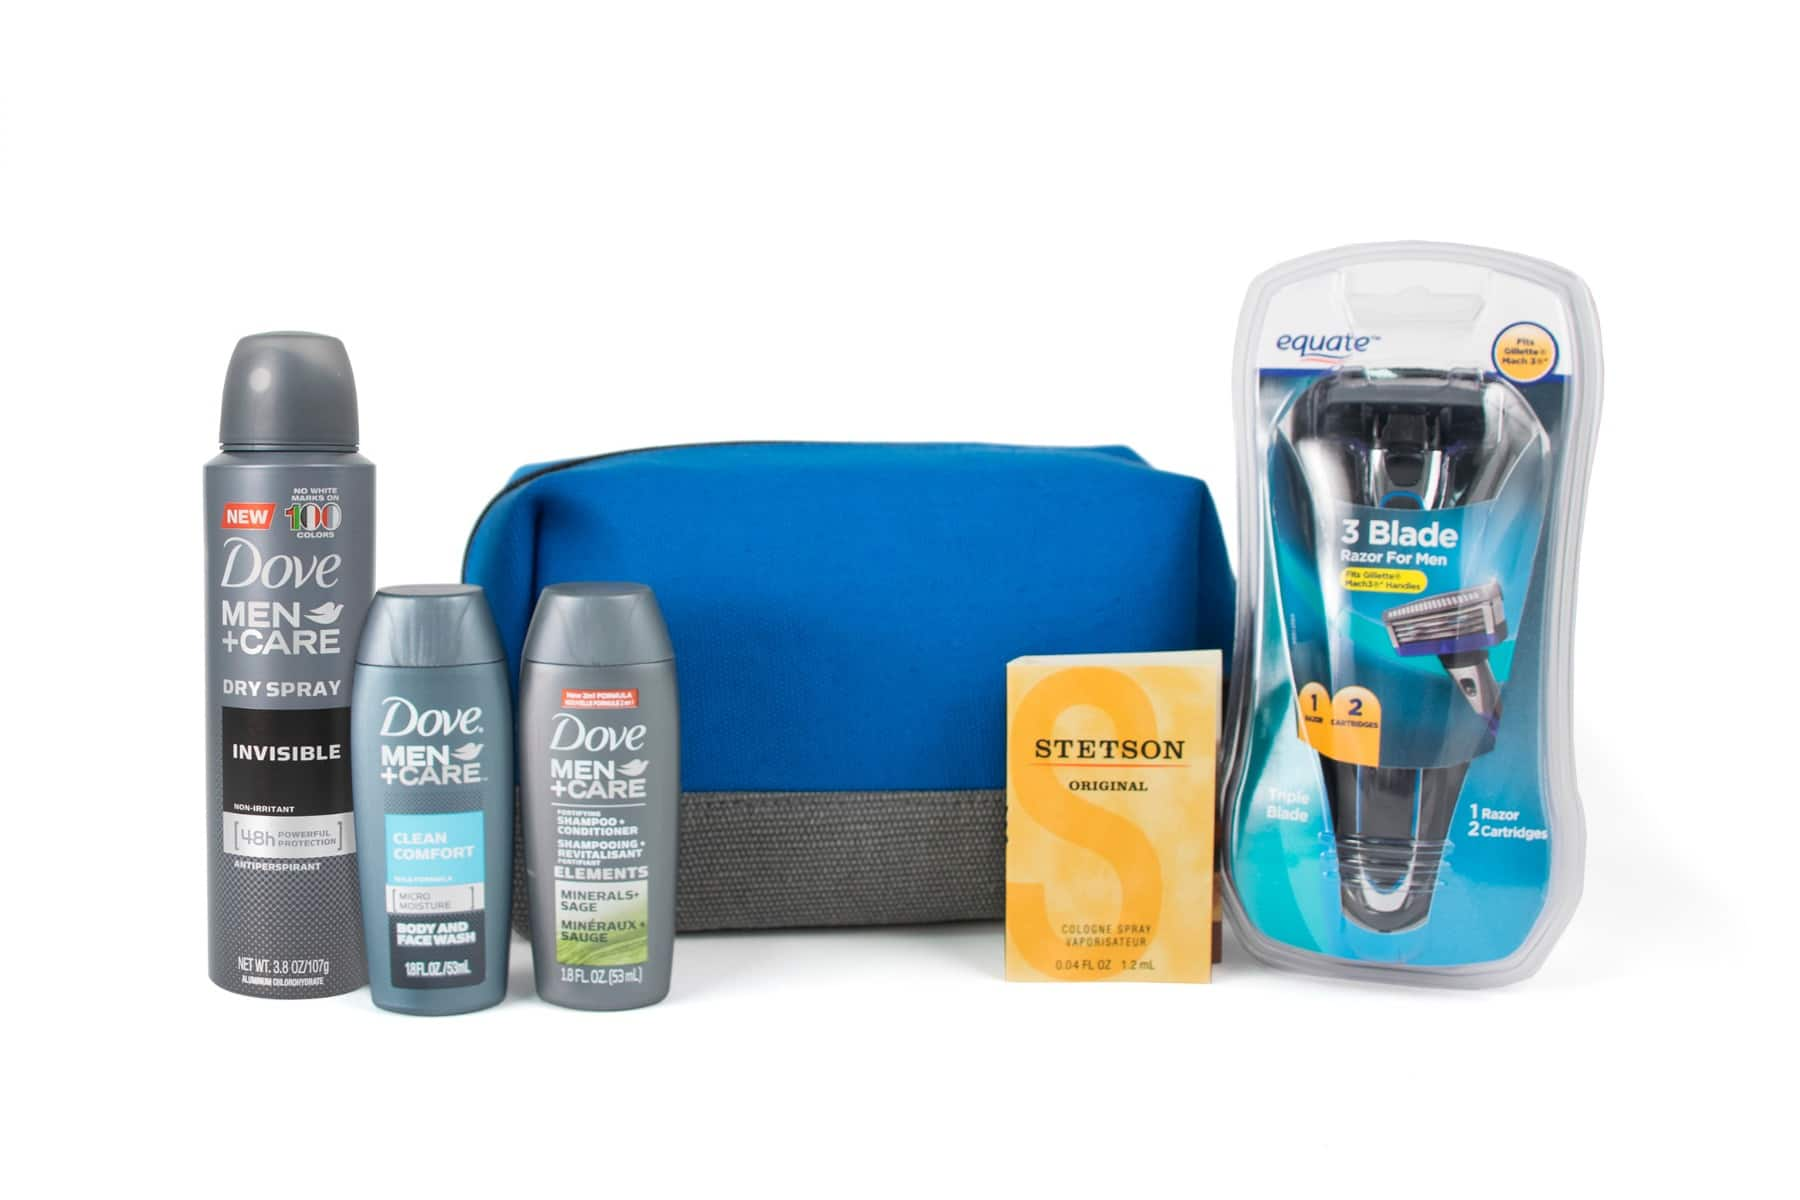 Limited Edition Men's Grooming Bag for $7 (A $21.00 value) @ Walmart